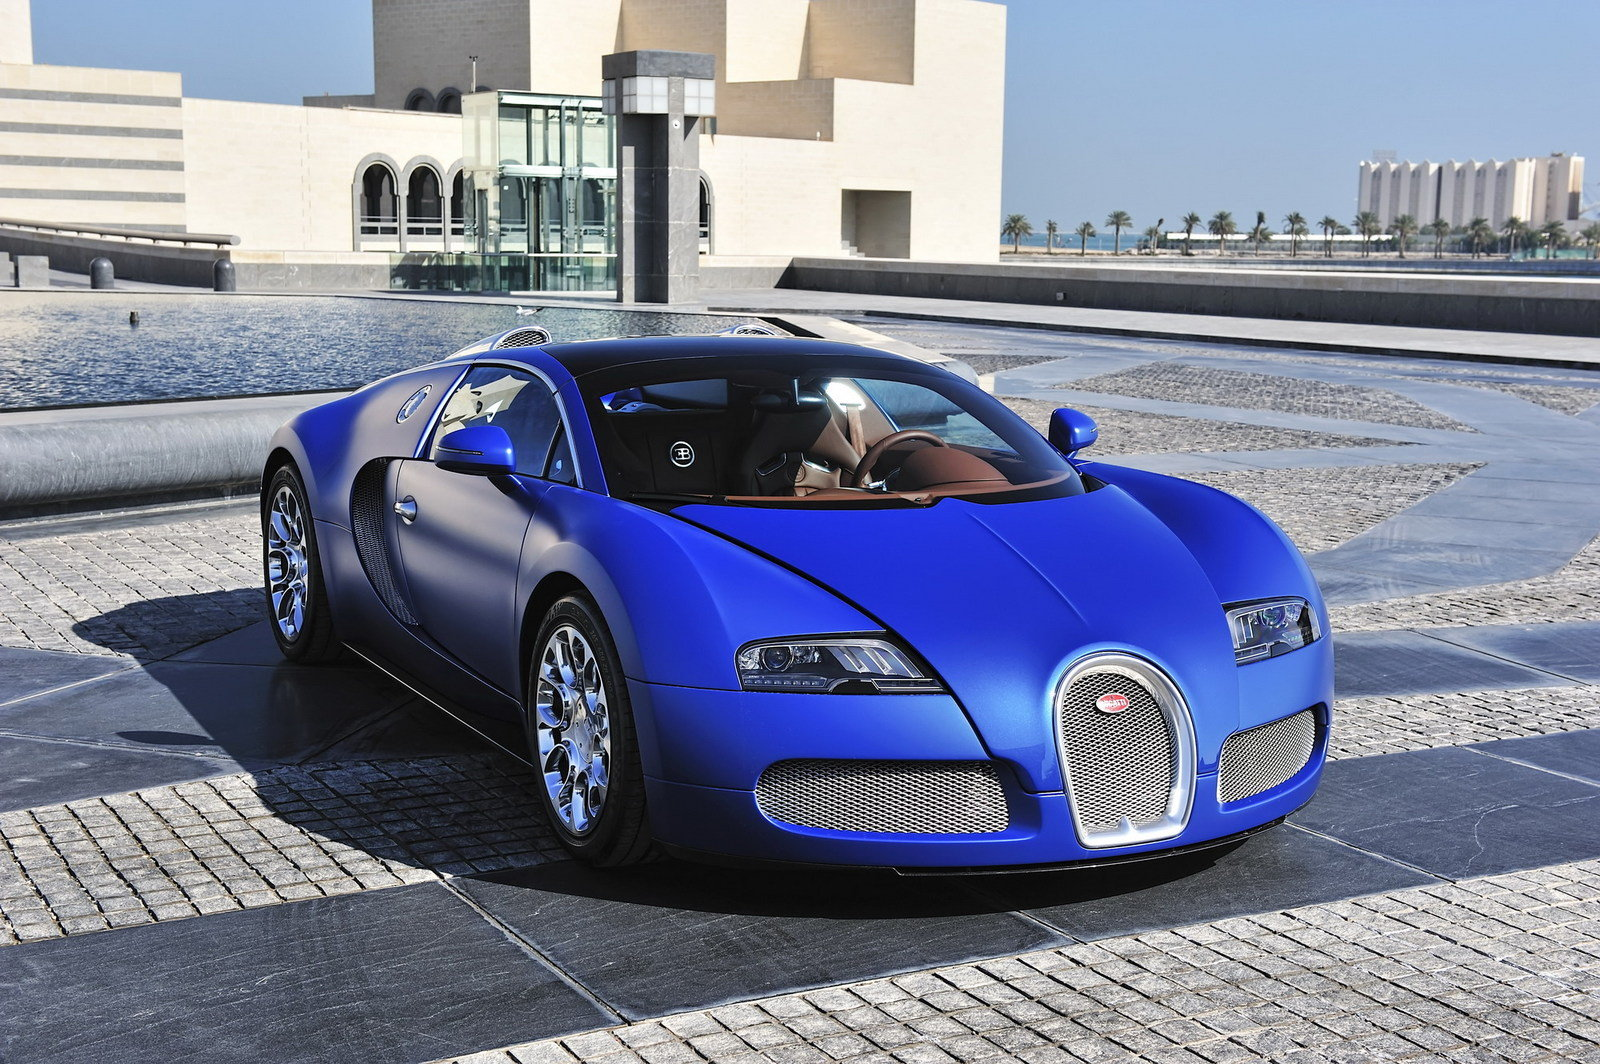 2009 2012 bugatti veyron grand sport car review top 2016 car release date. Black Bedroom Furniture Sets. Home Design Ideas